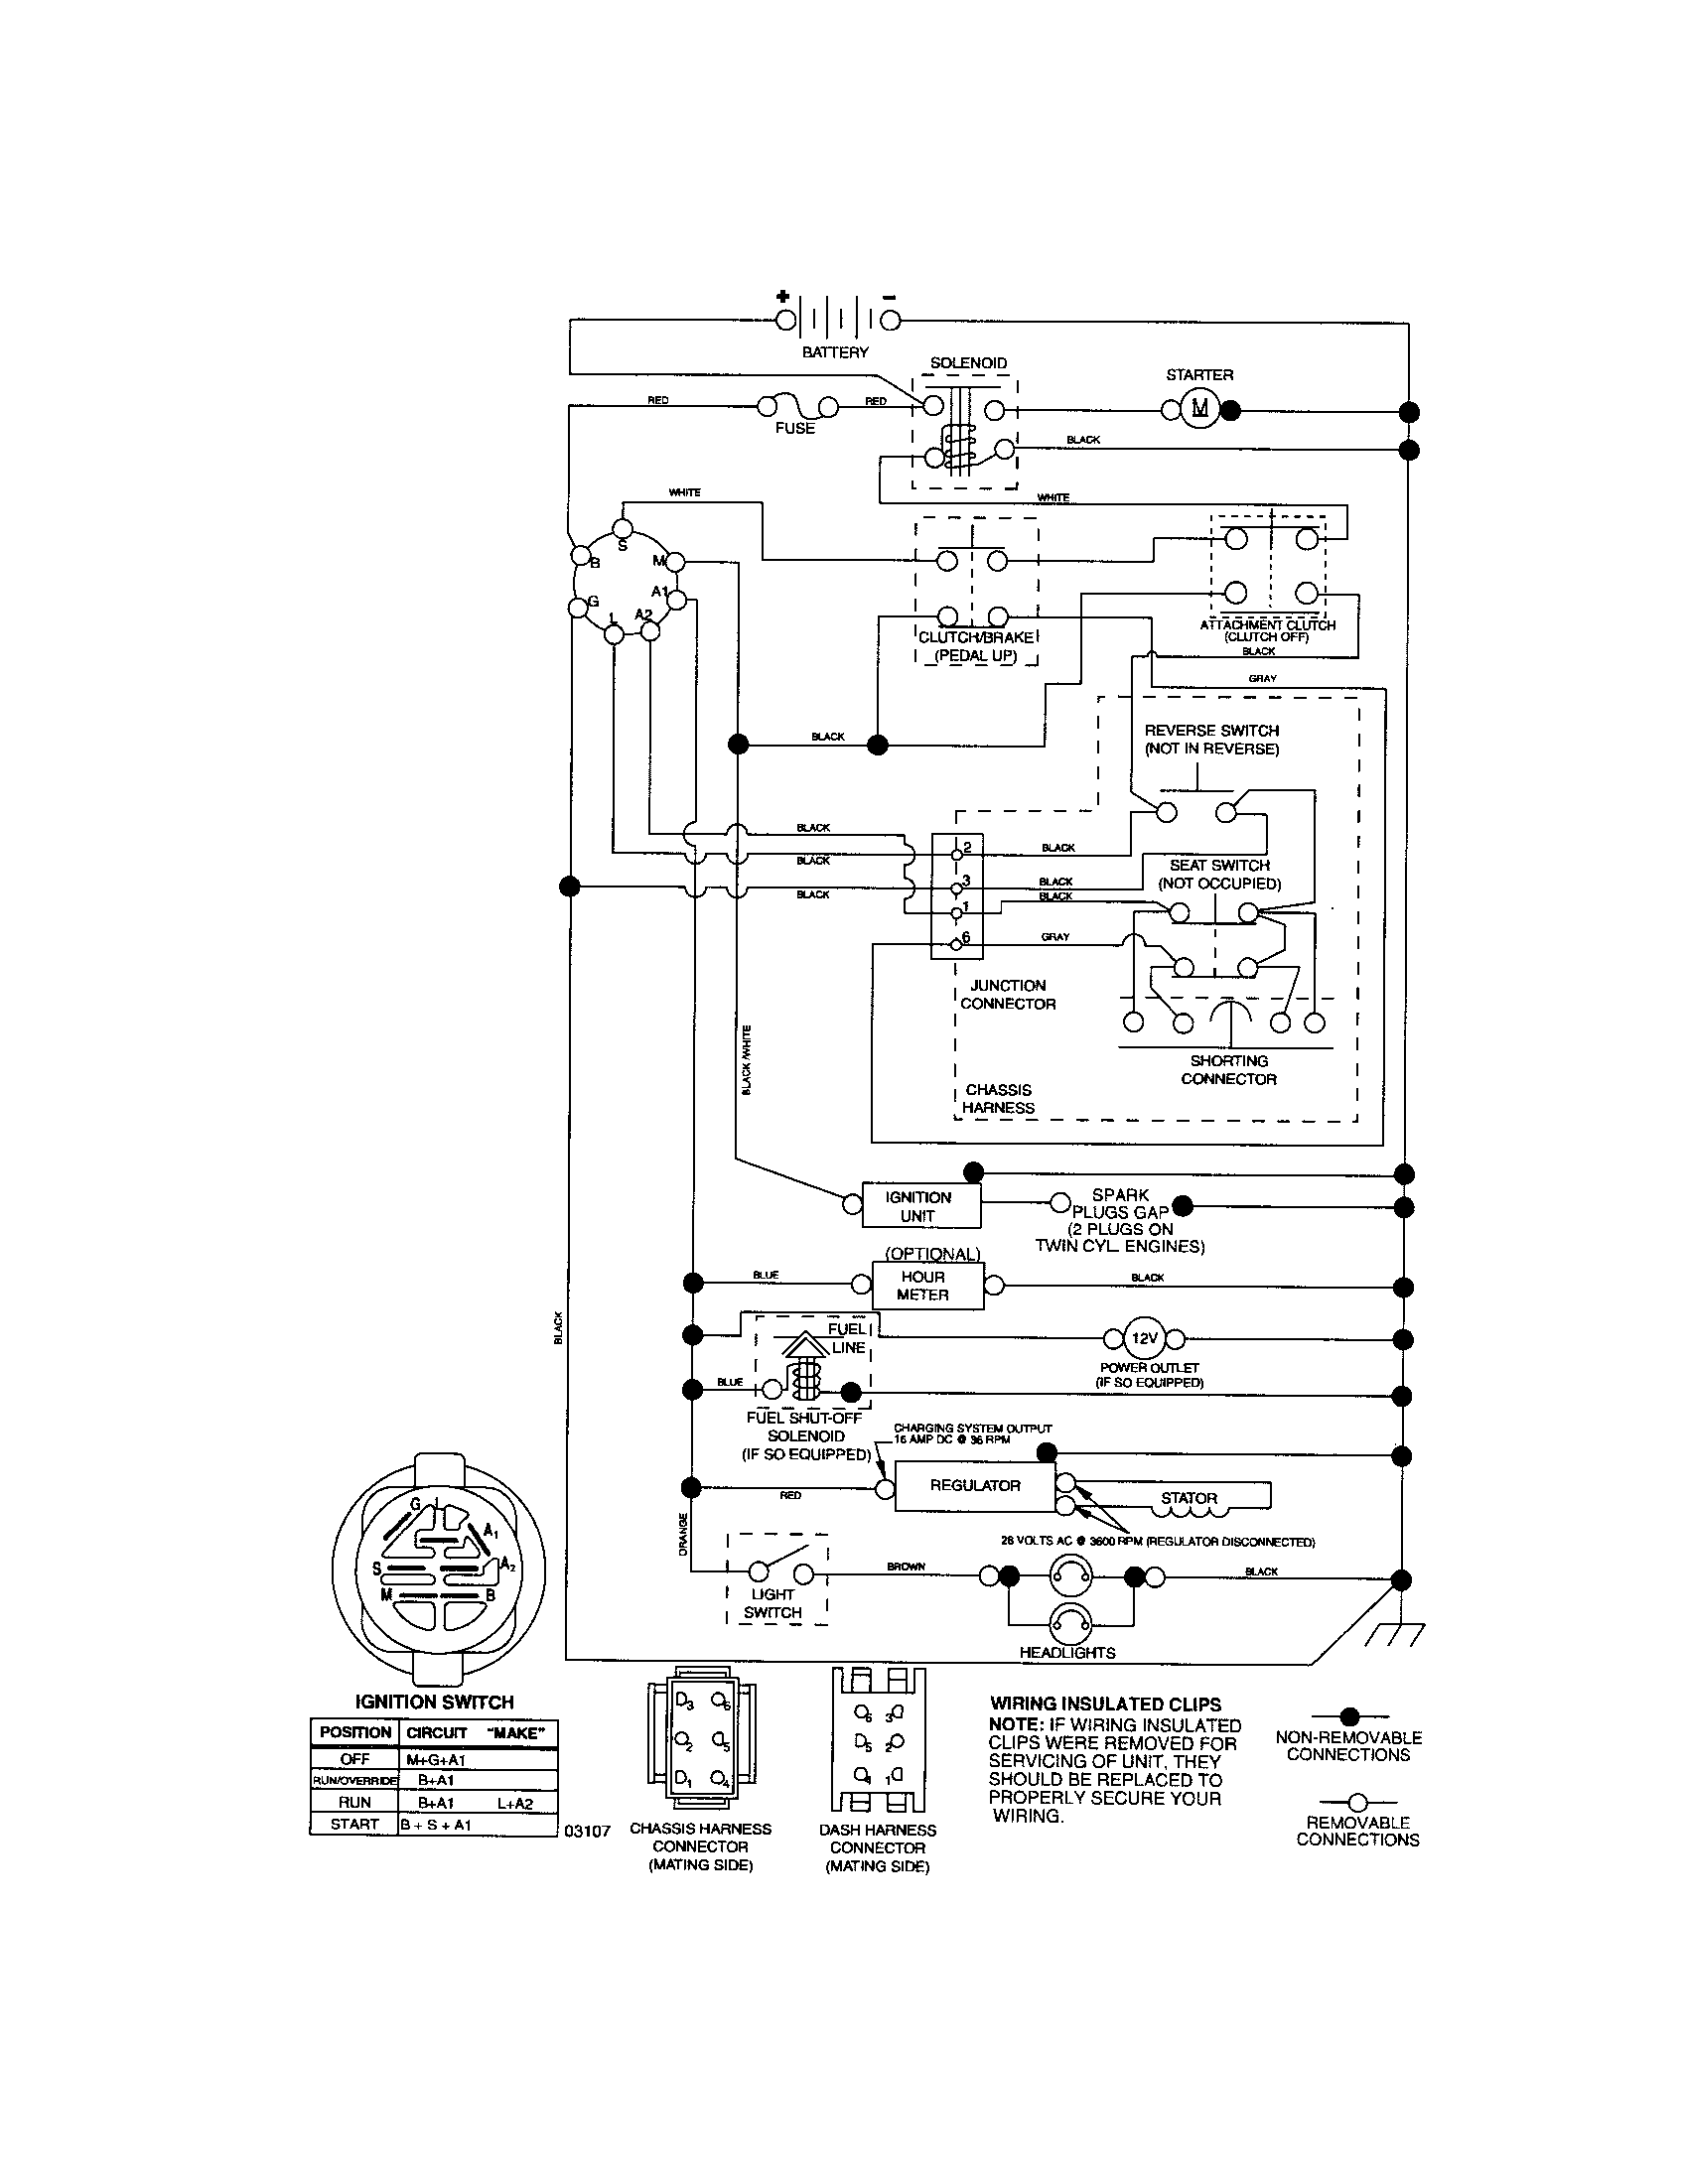 craftsman riding mower electrical diagram wiring diagram craftsman rh pinterest com craftsman lawn mower wiring diagram sears riding mower wiring diagram